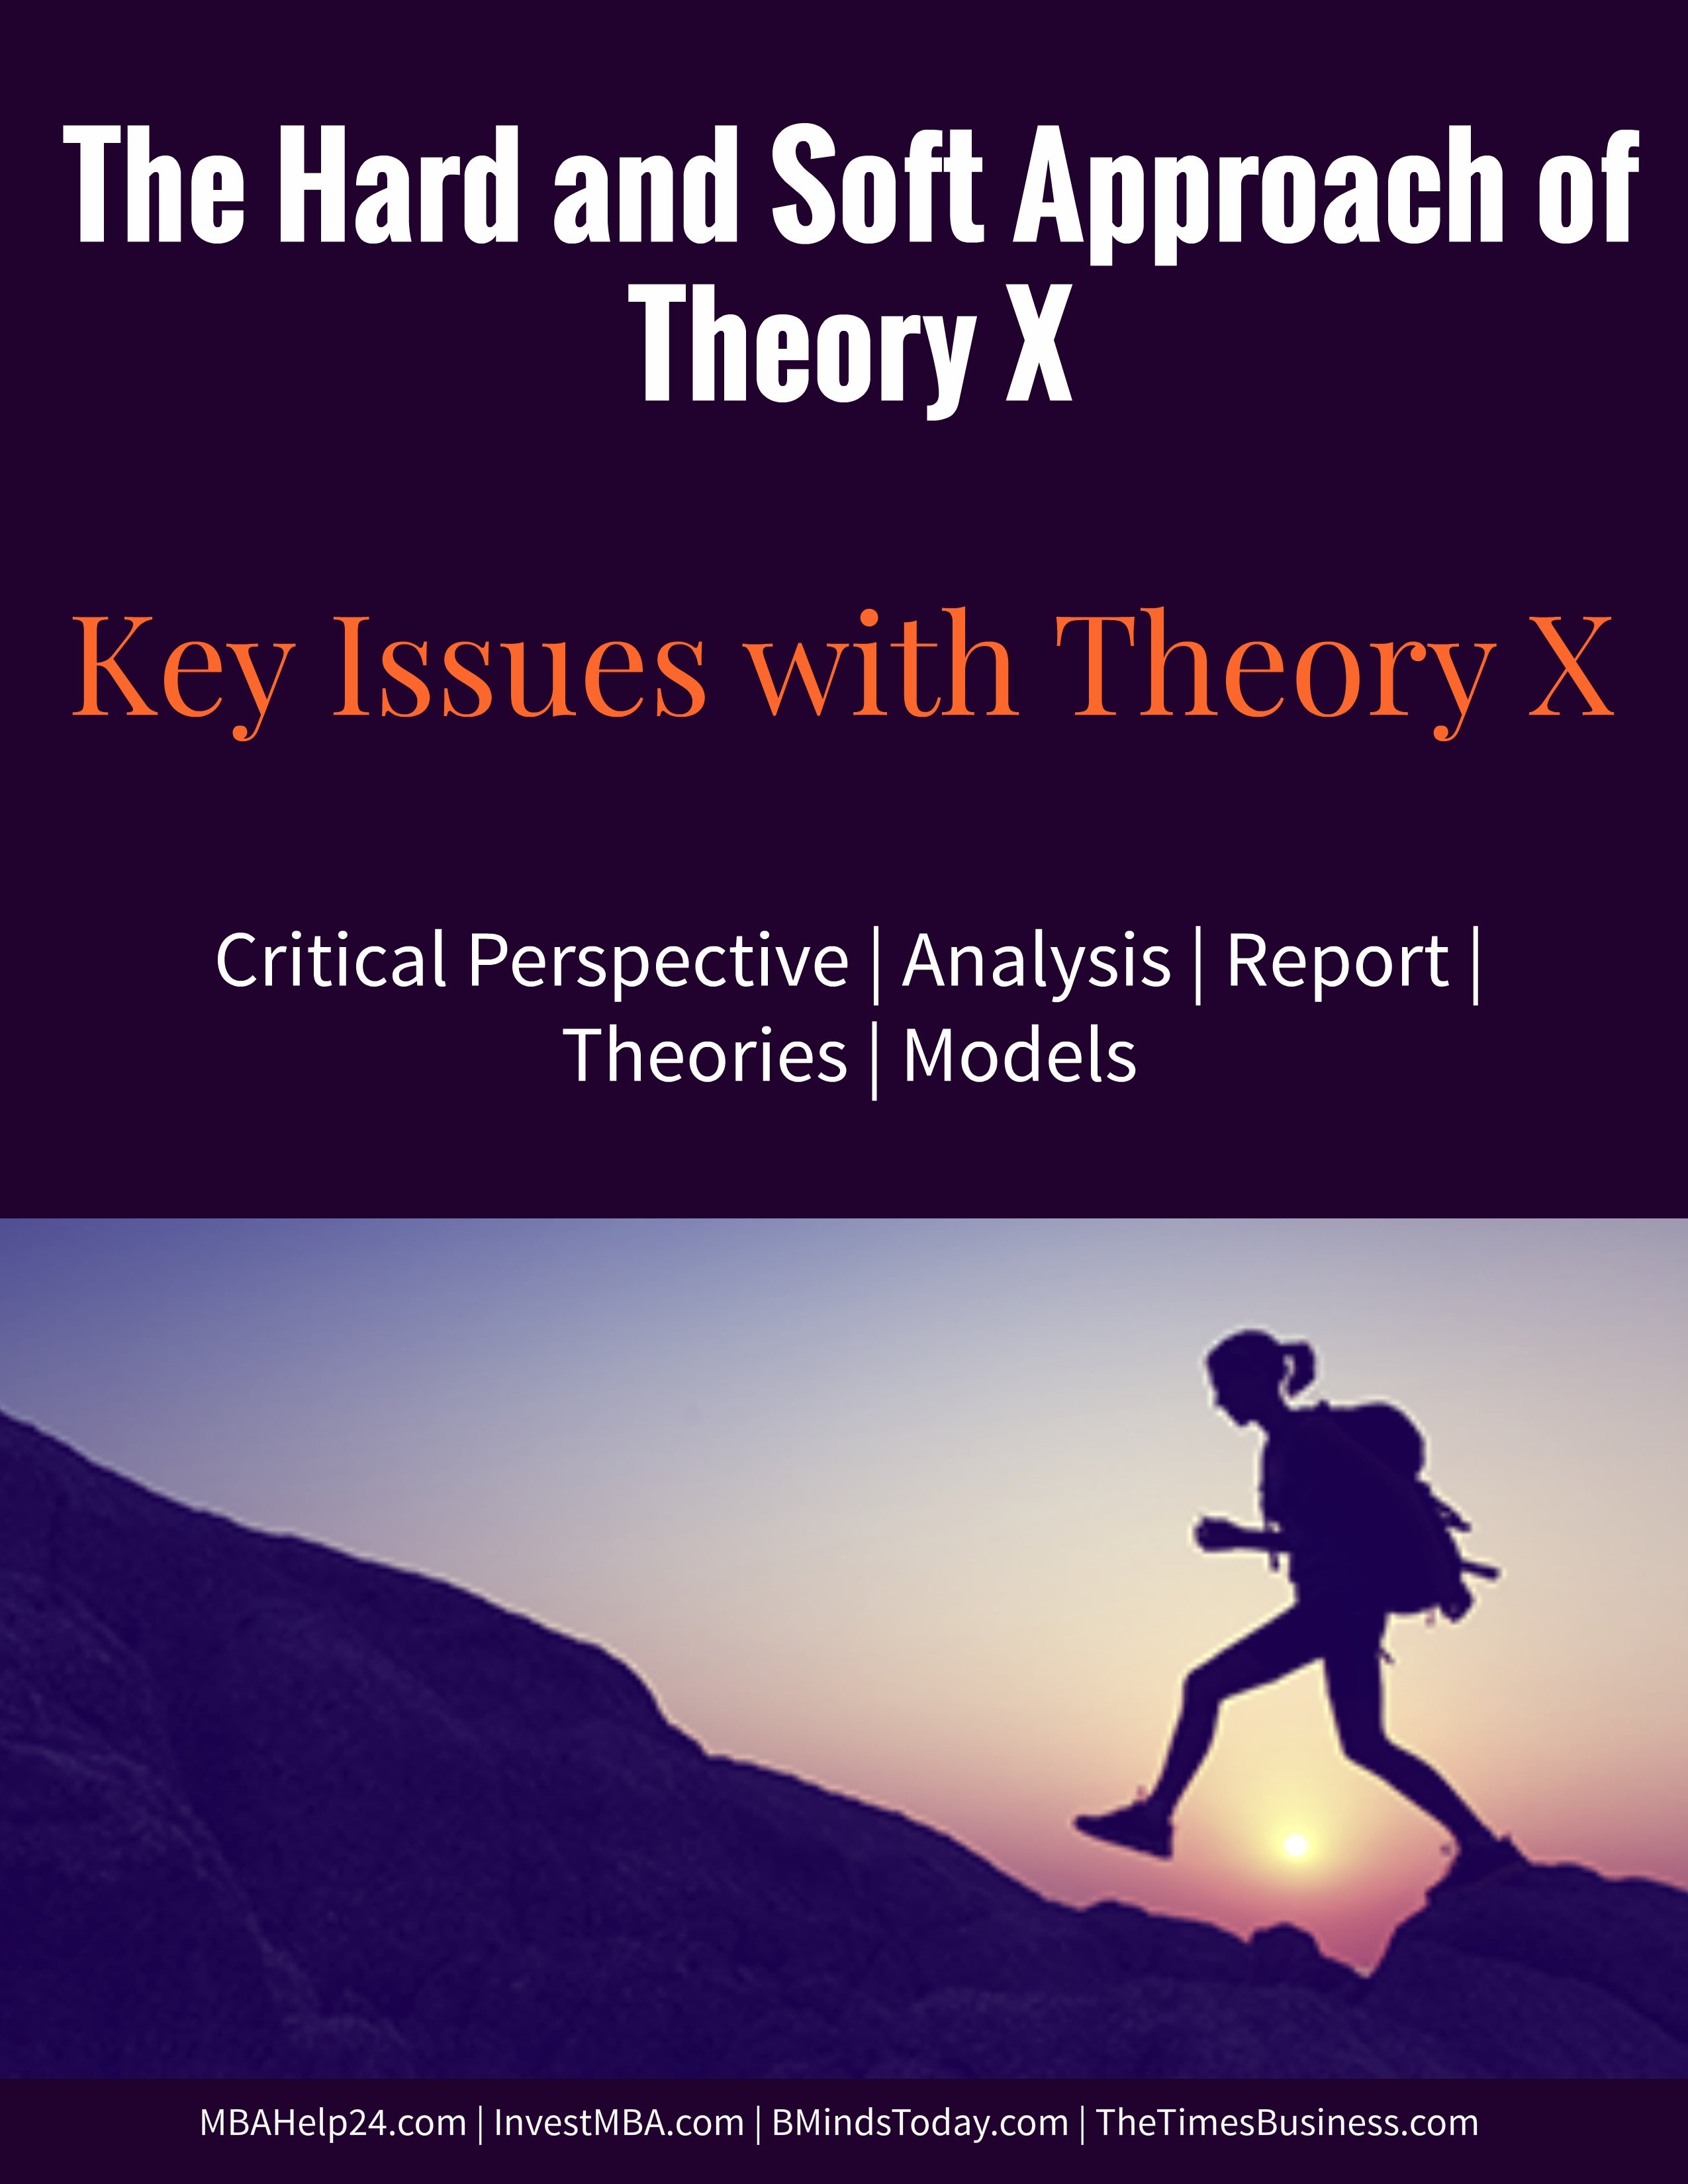 The Hard and Soft Approach of Theory X | Key Issues with Theory X theory x The Hard and Soft Approach of Theory X | Key Issues with Theory X soft and hard theory x